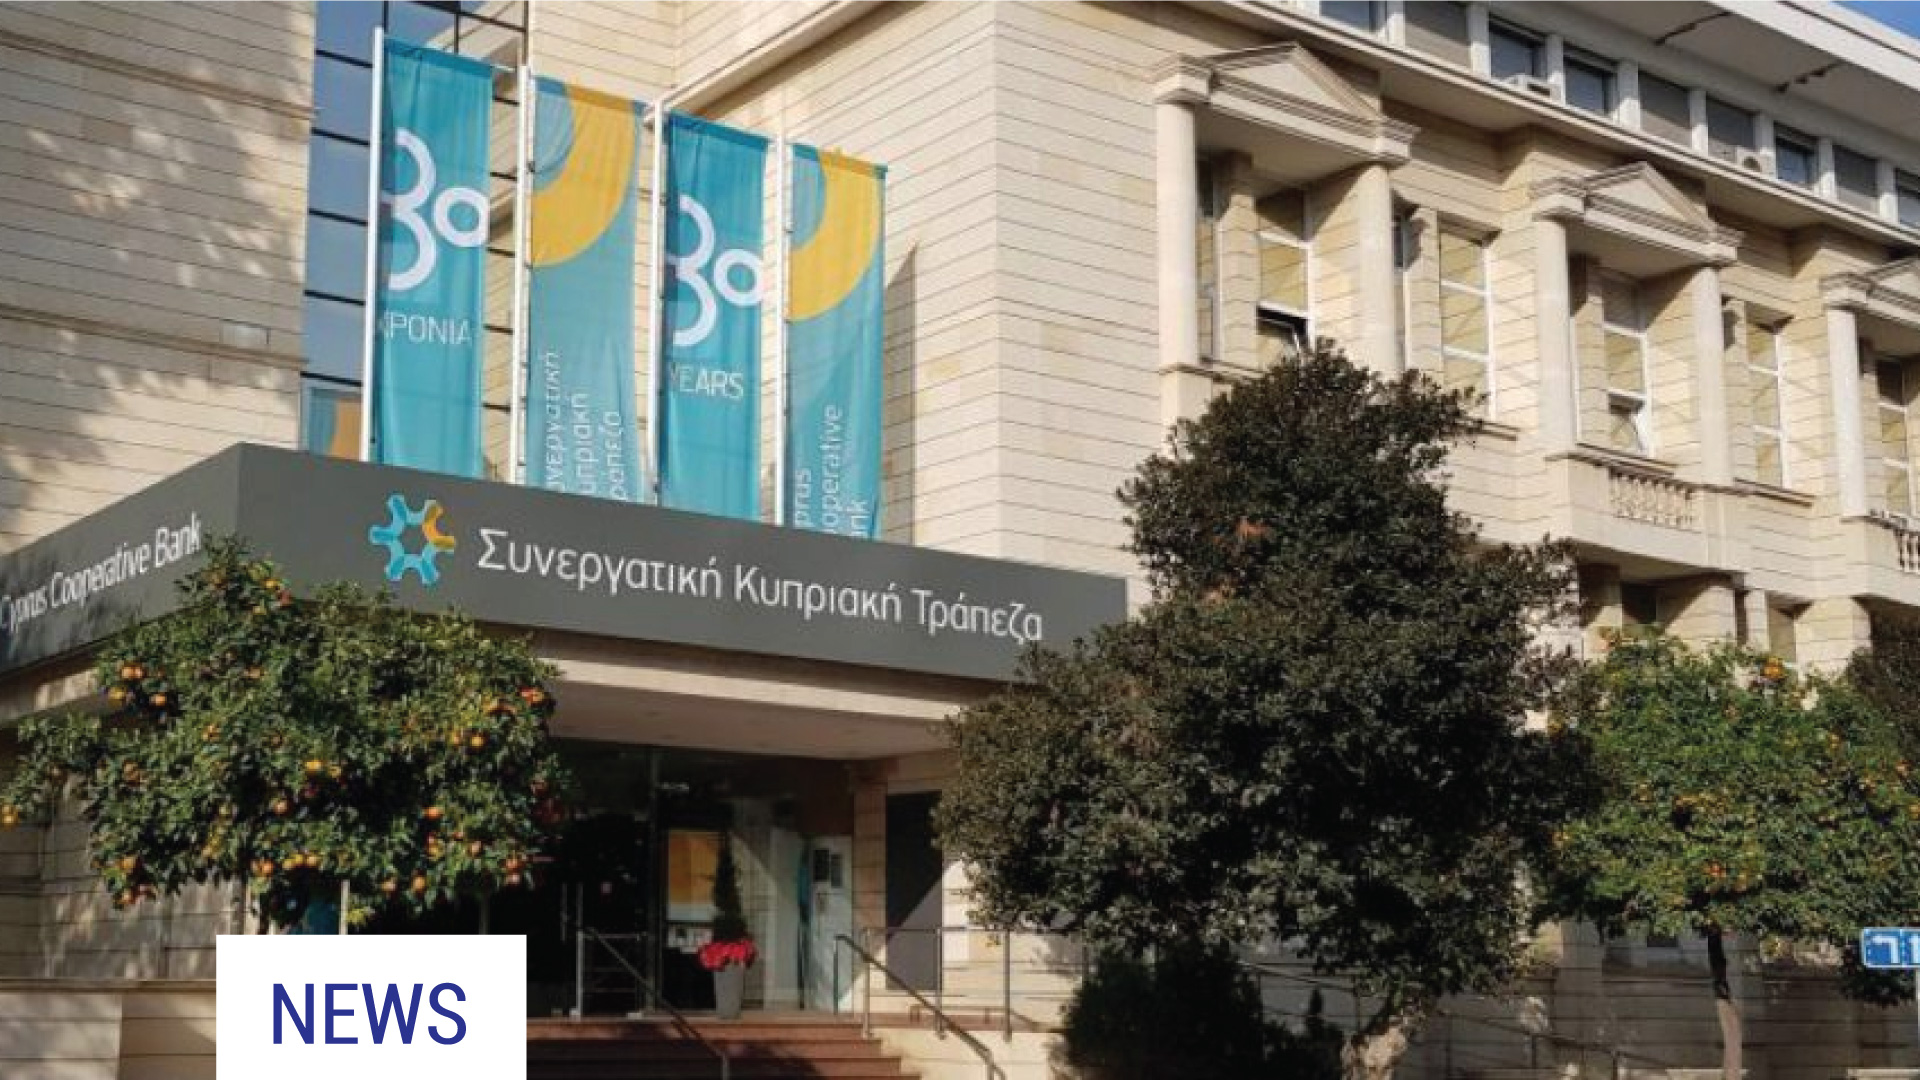 New York Times: Standard & Poor's lifts Cyprus into investment grade